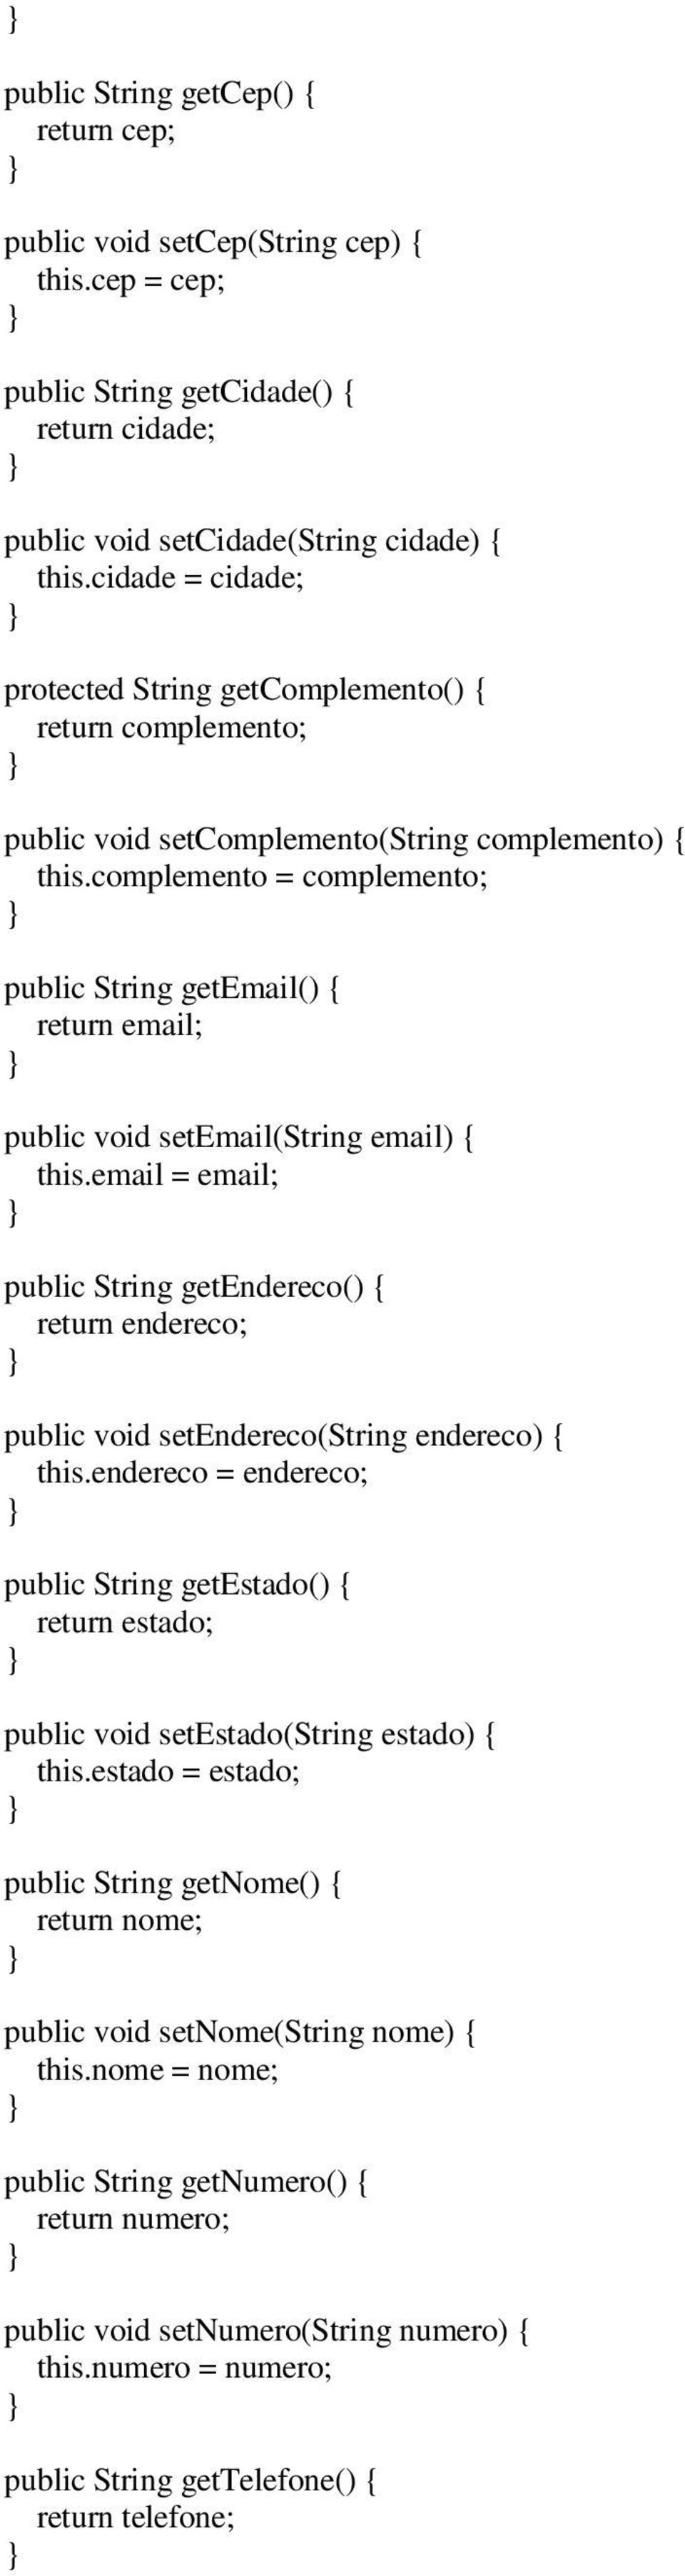 complemento = complemento; public String getemail() { return email; public void setemail(string email) { this.